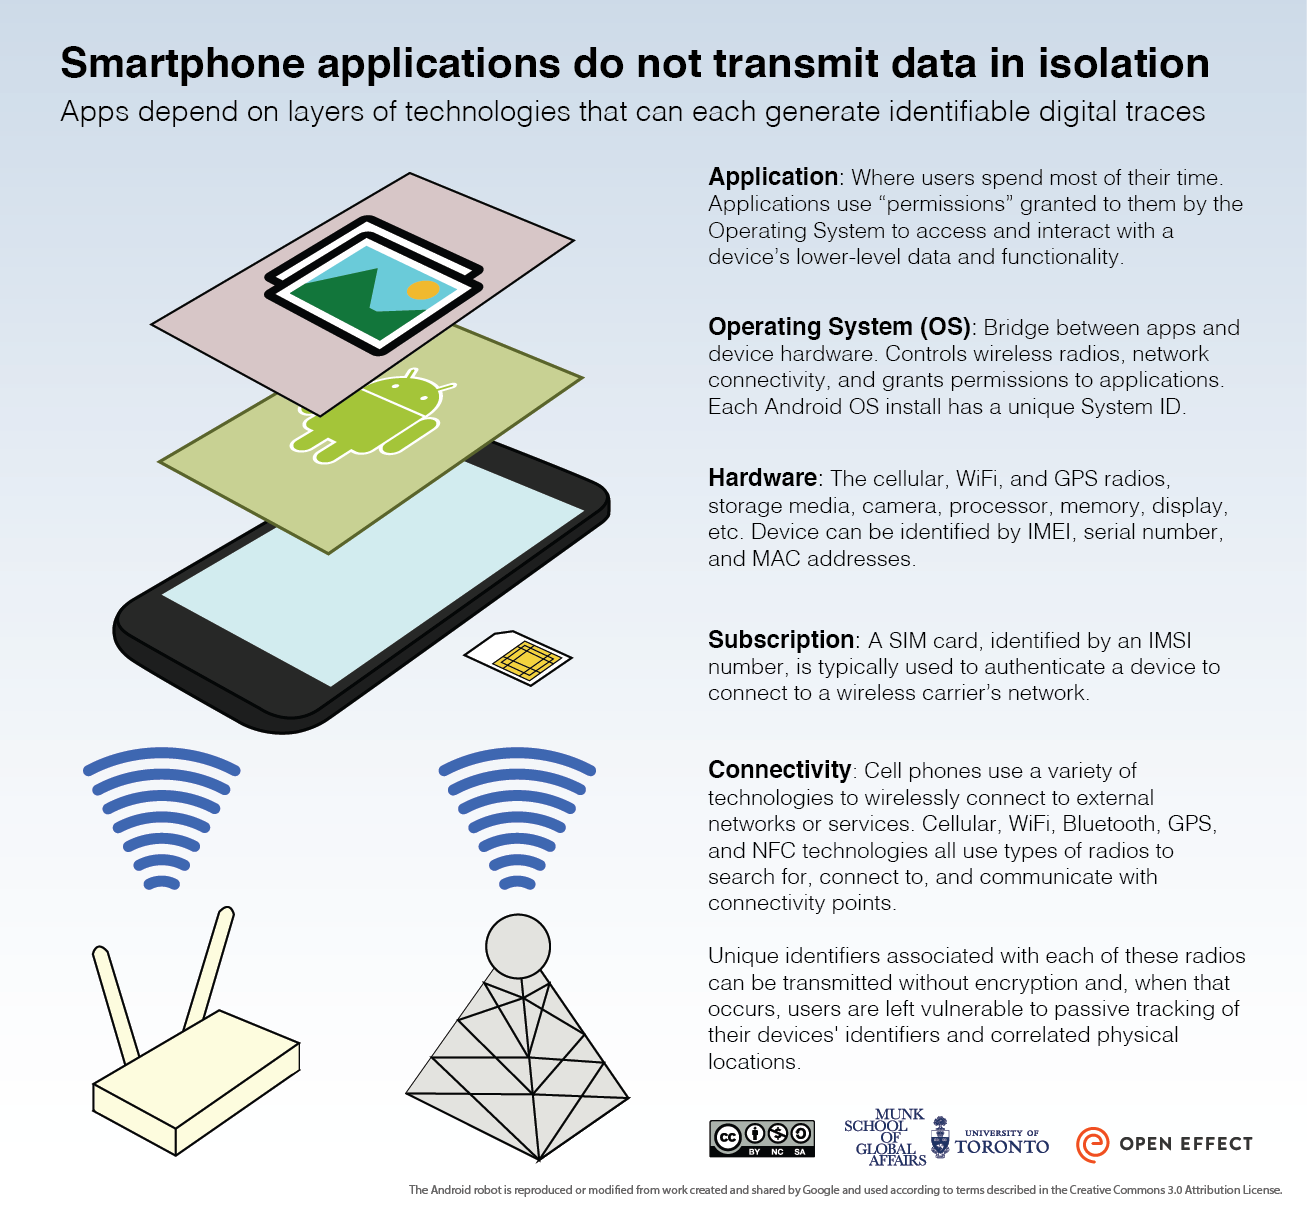 Smartphone applications do not transmit data in isolation